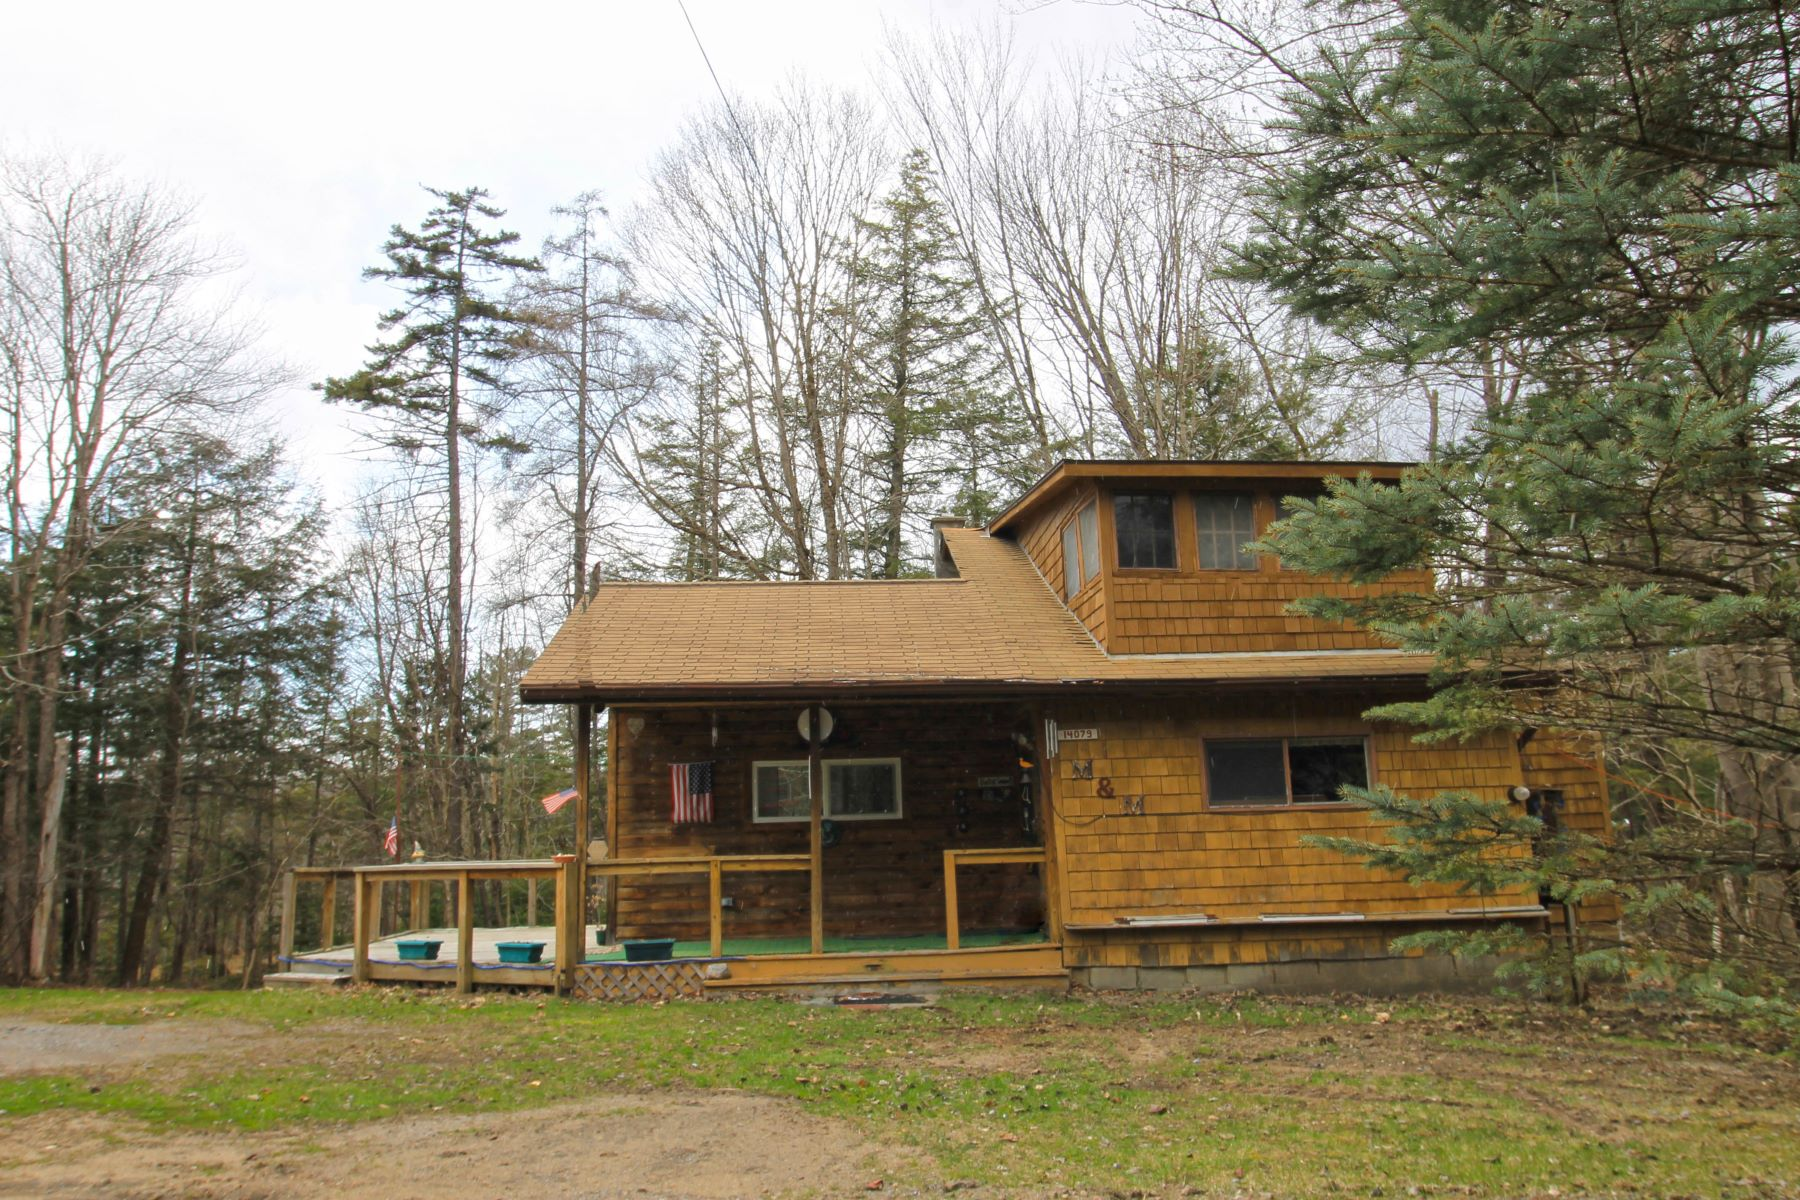 Single Family Homes for Active at Year-Round Bungalow 14079 NYS Route 28 Forestport, New York 13338 United States